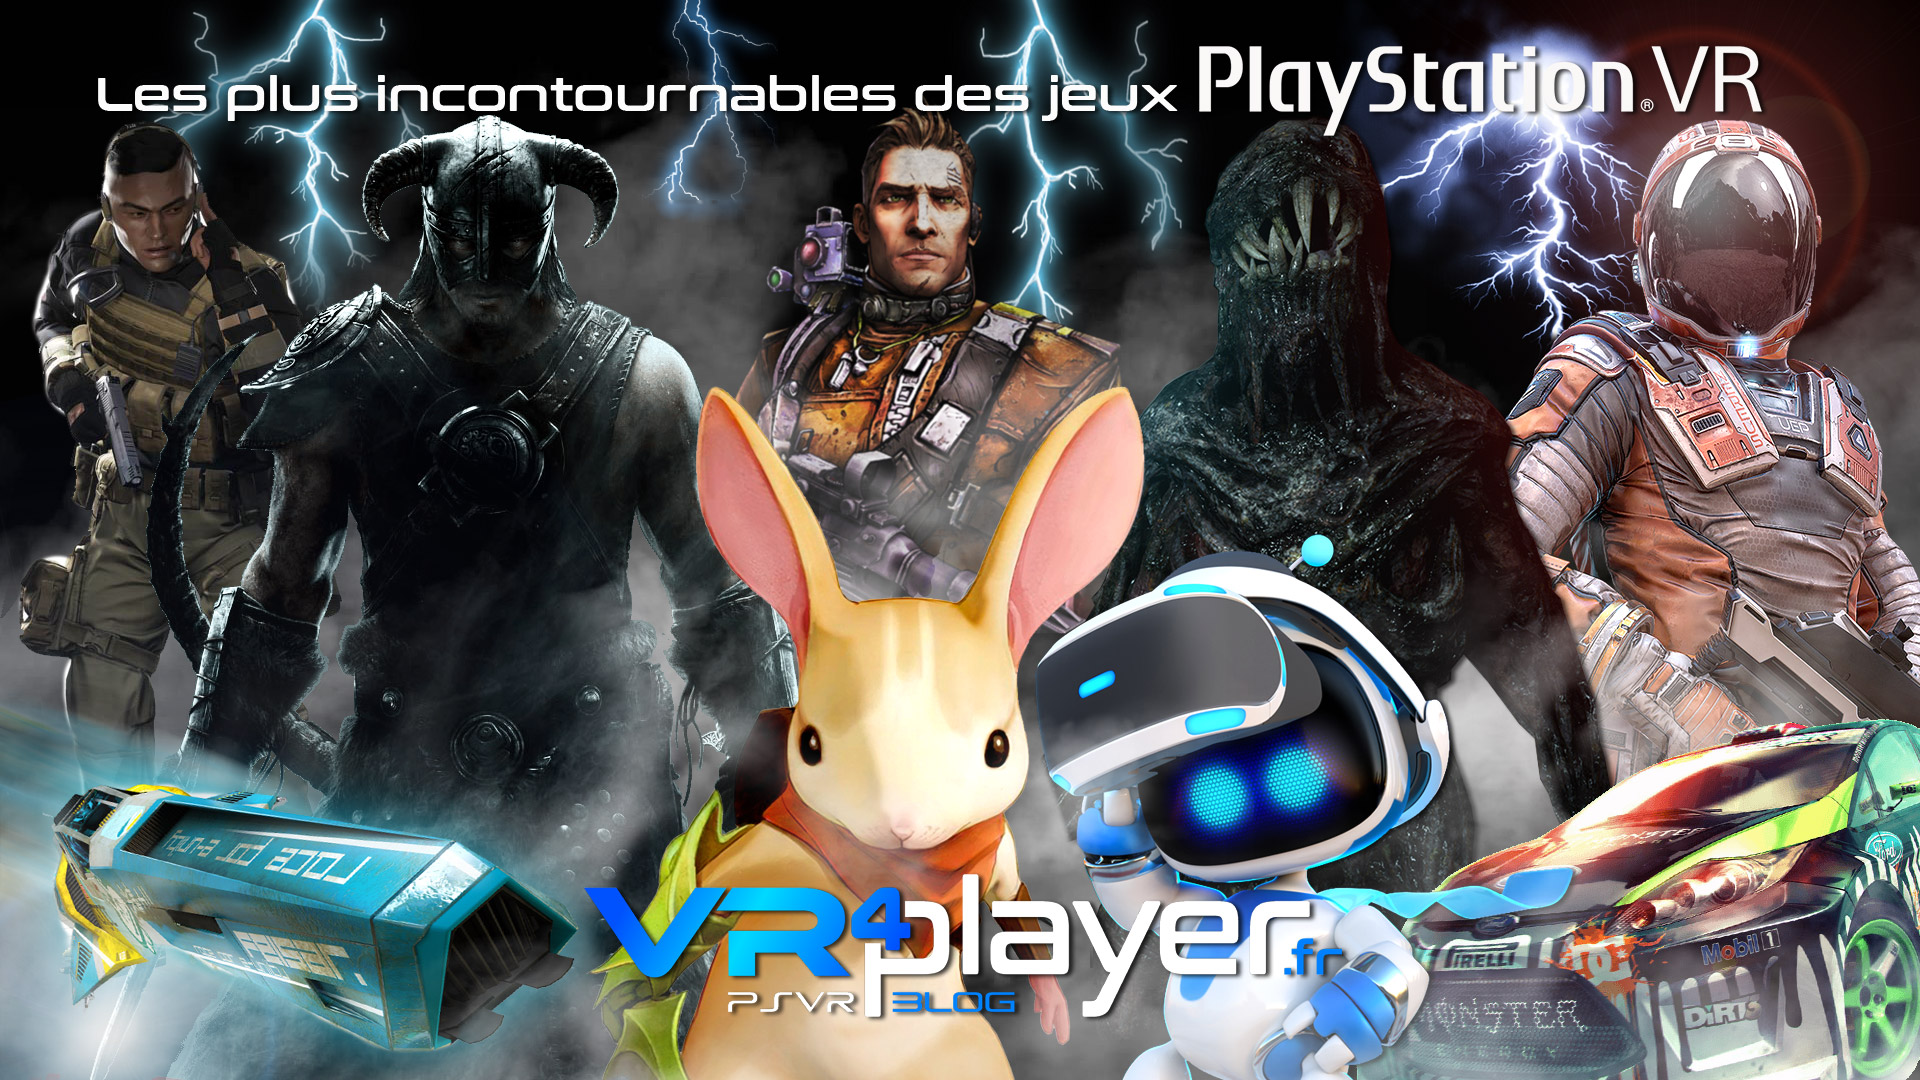 Les jeux incontournables du catalogue PlayStation VR - vr4player.fr